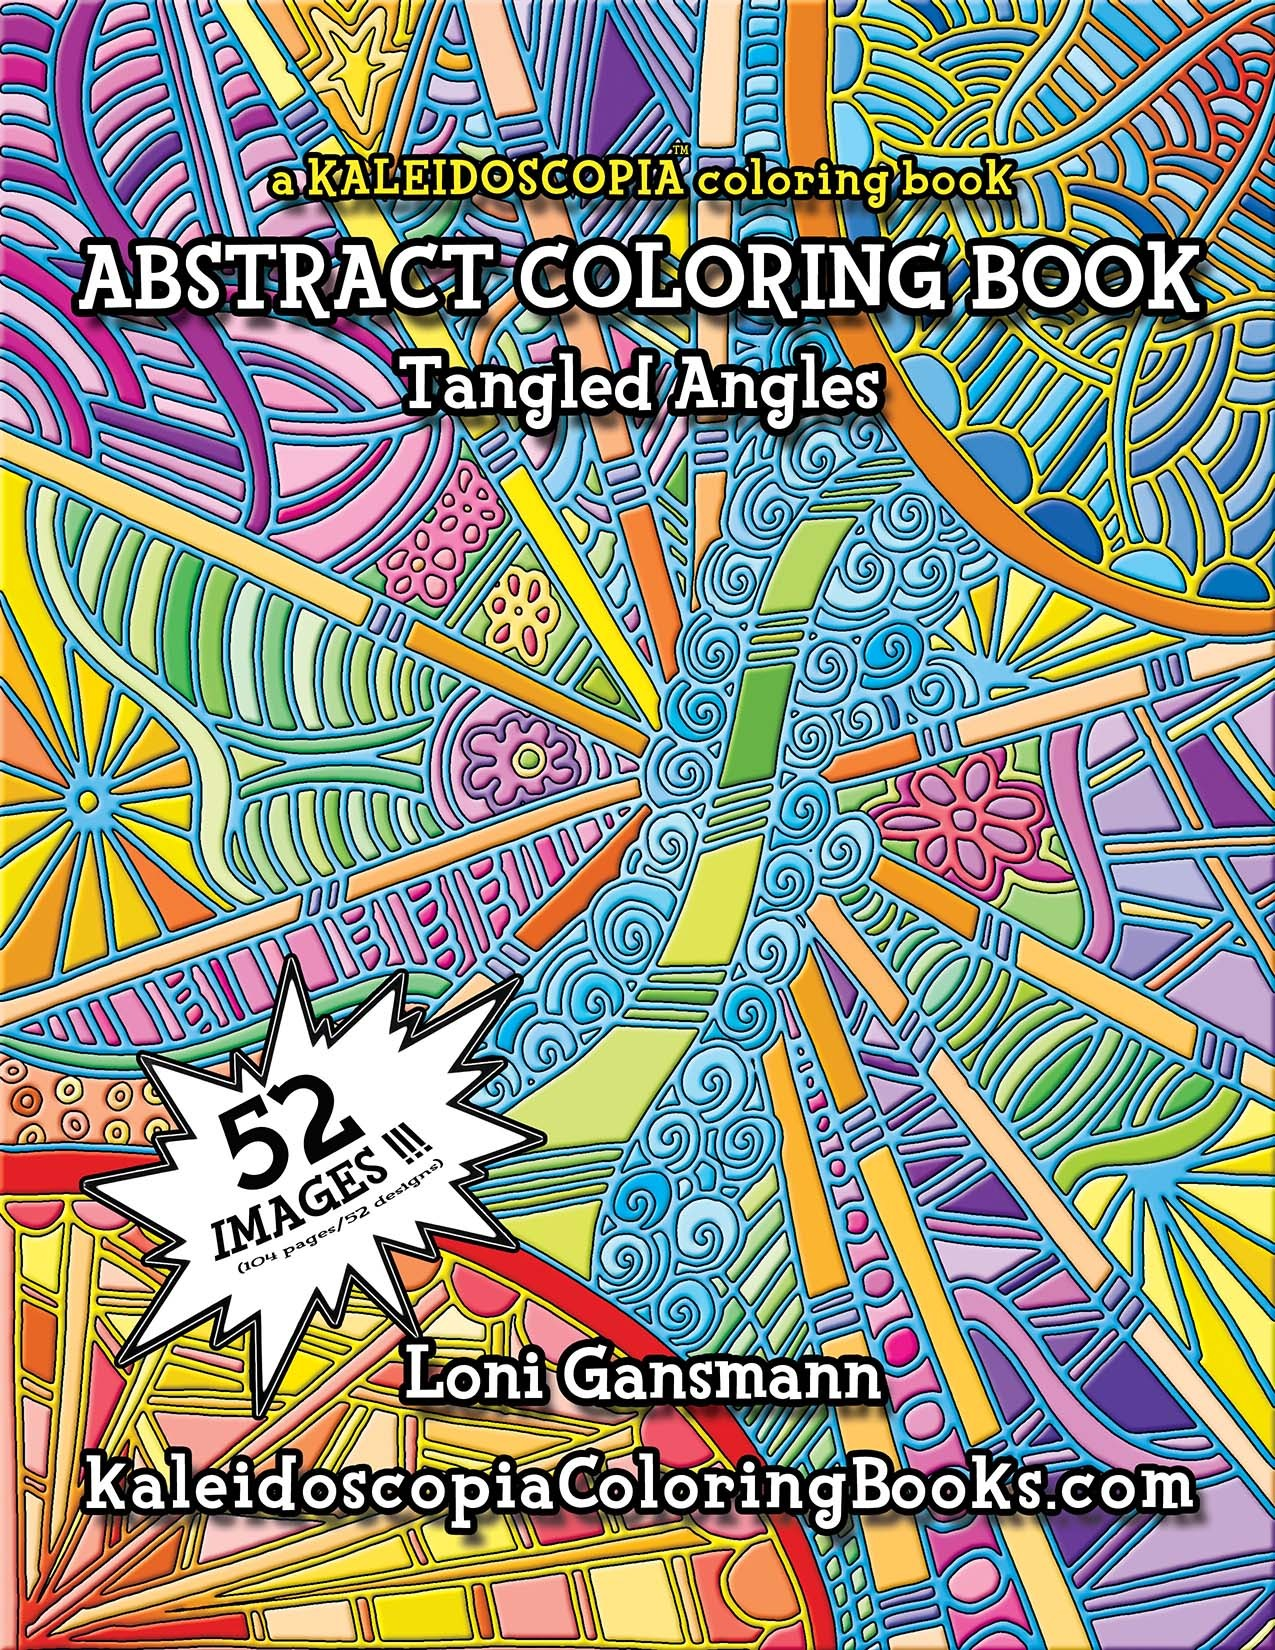 tangled angles an abstract coloring book - Abstract Coloring Books